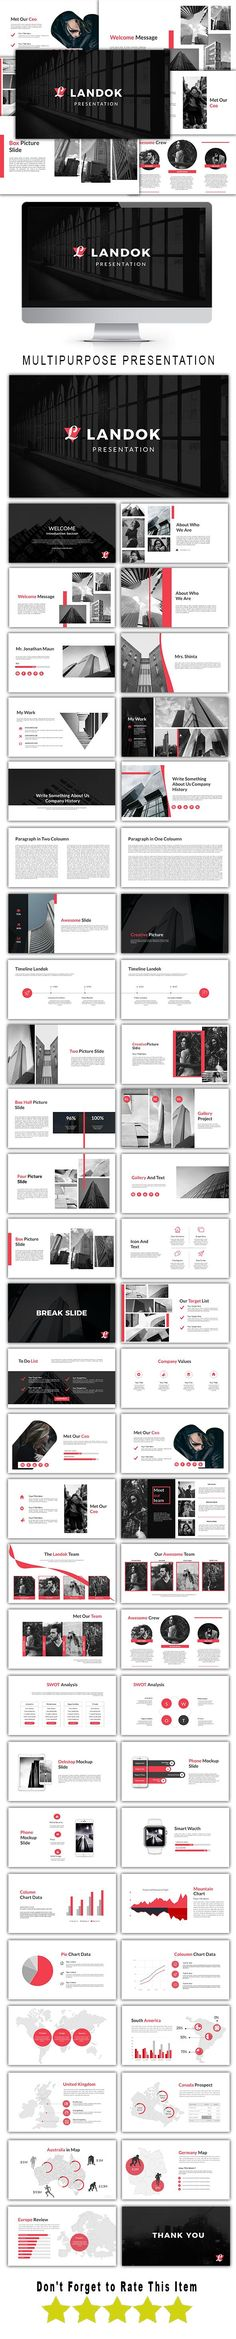 Landok Multipurpose Powerpoint Template - PowerPoint Templates Presentation Templates